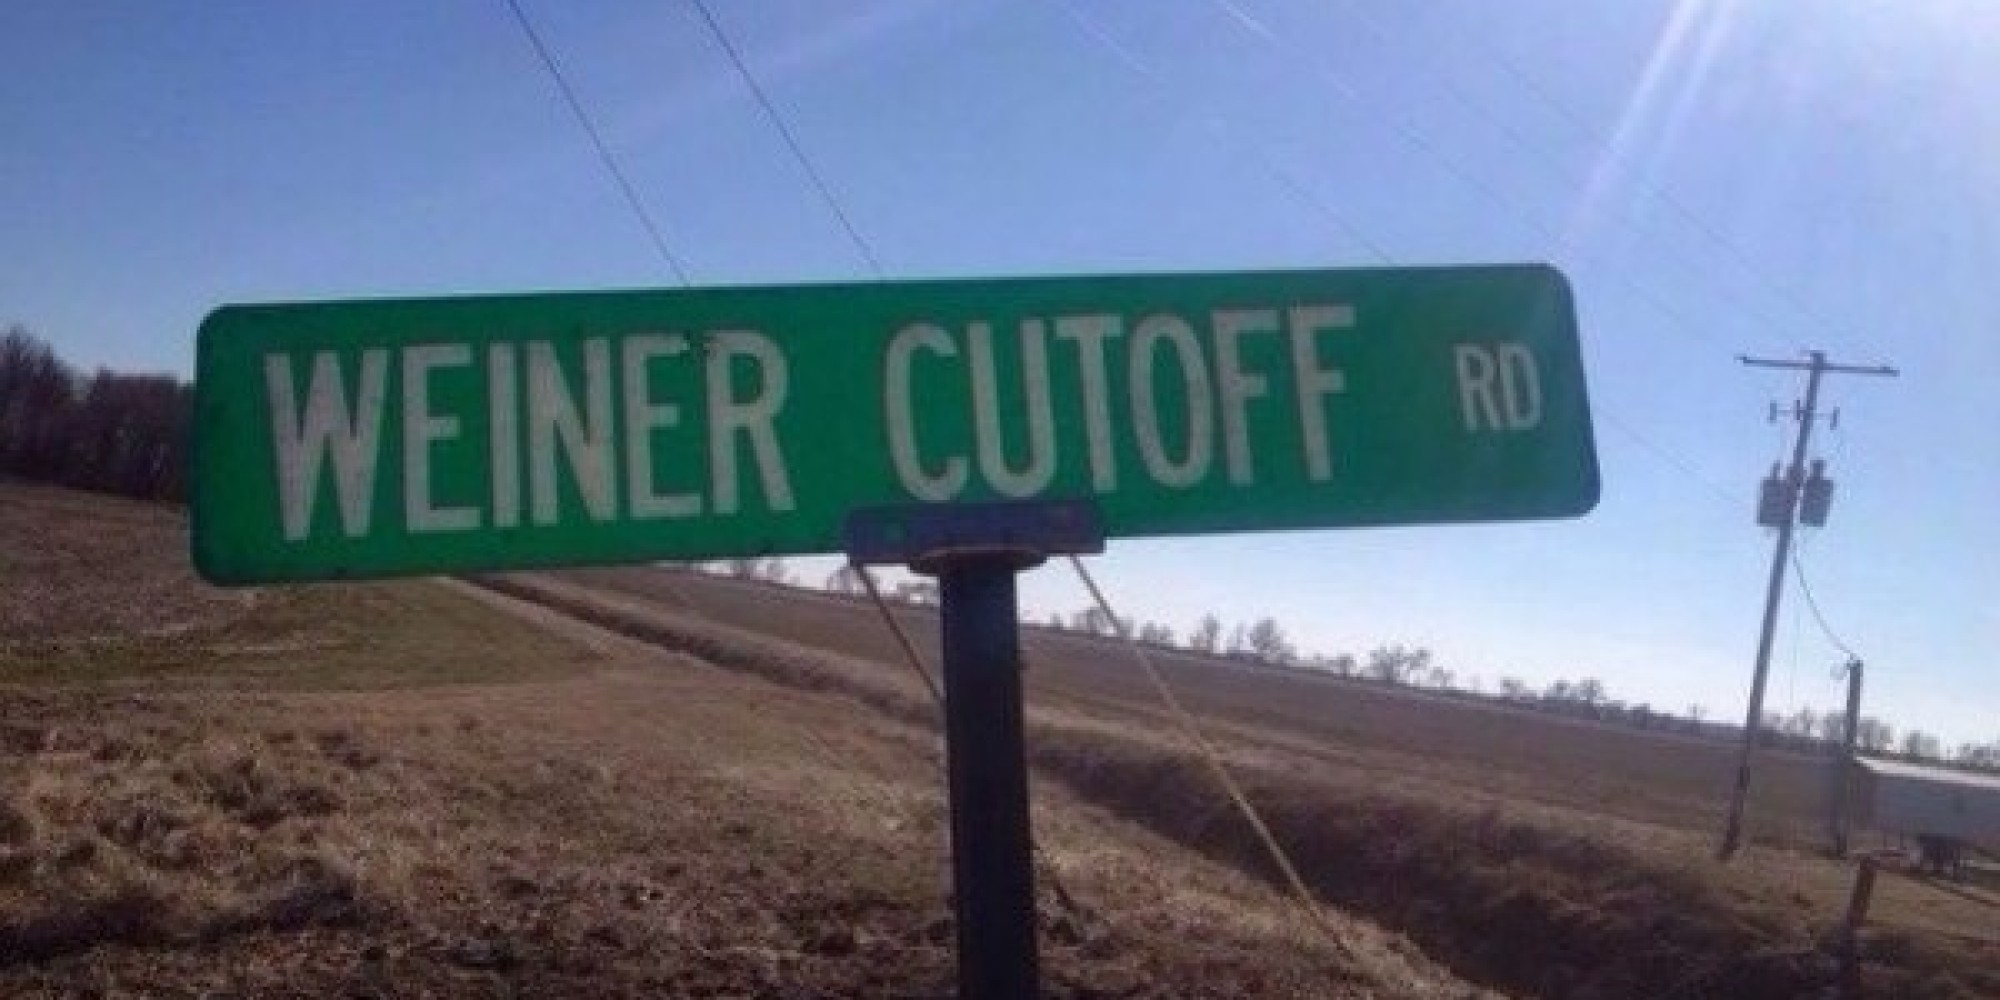 Funny Street Sign Names Please Don t Make Us Give